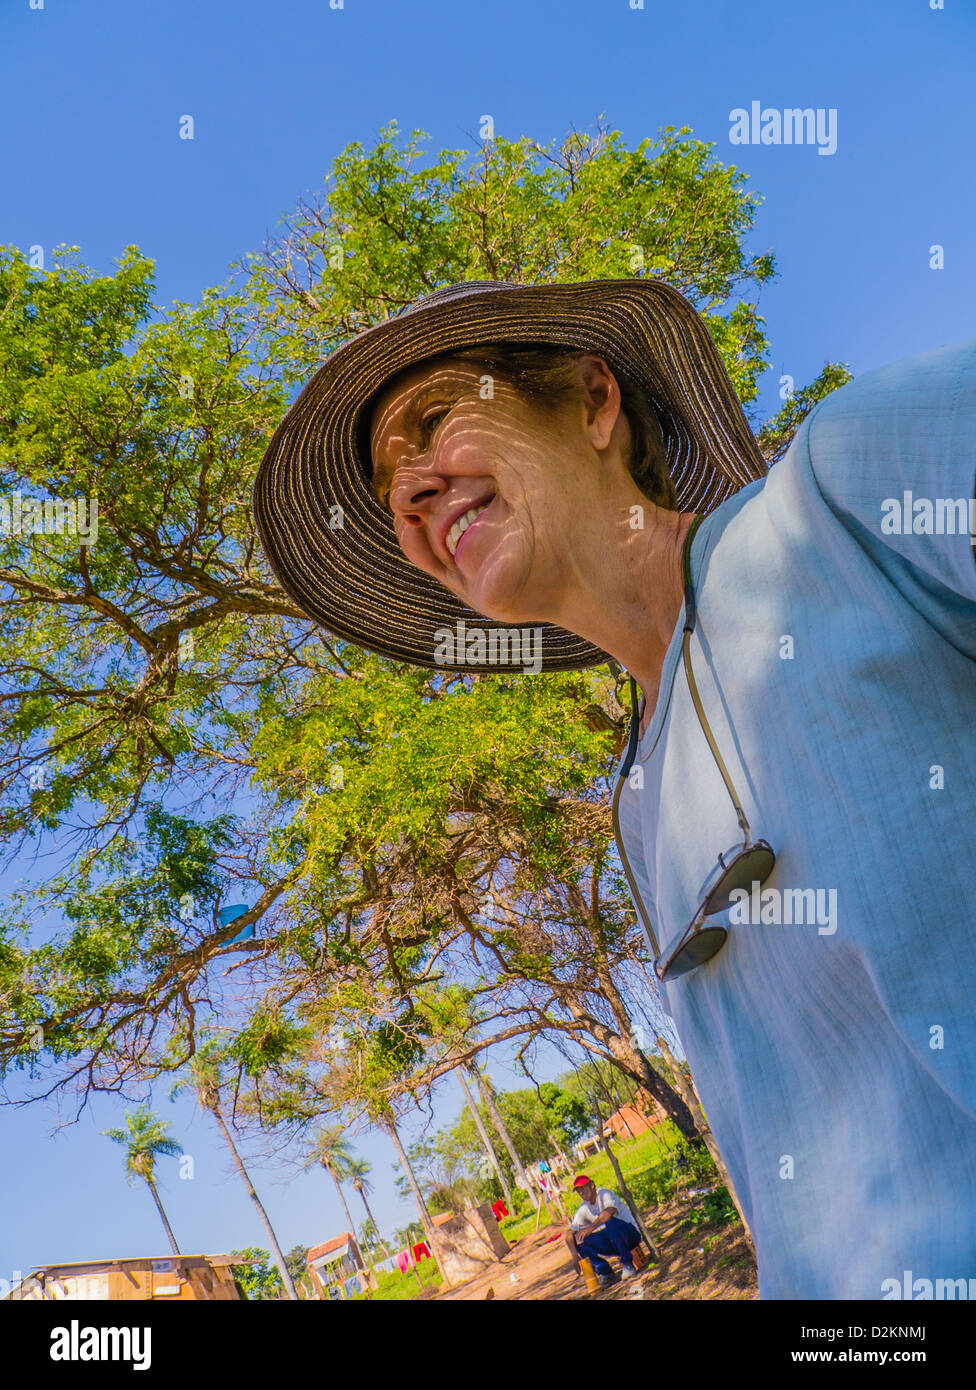 A female volunteer from the United States on a house building project for Habitat for Humanity Paraguay. - Stock Image